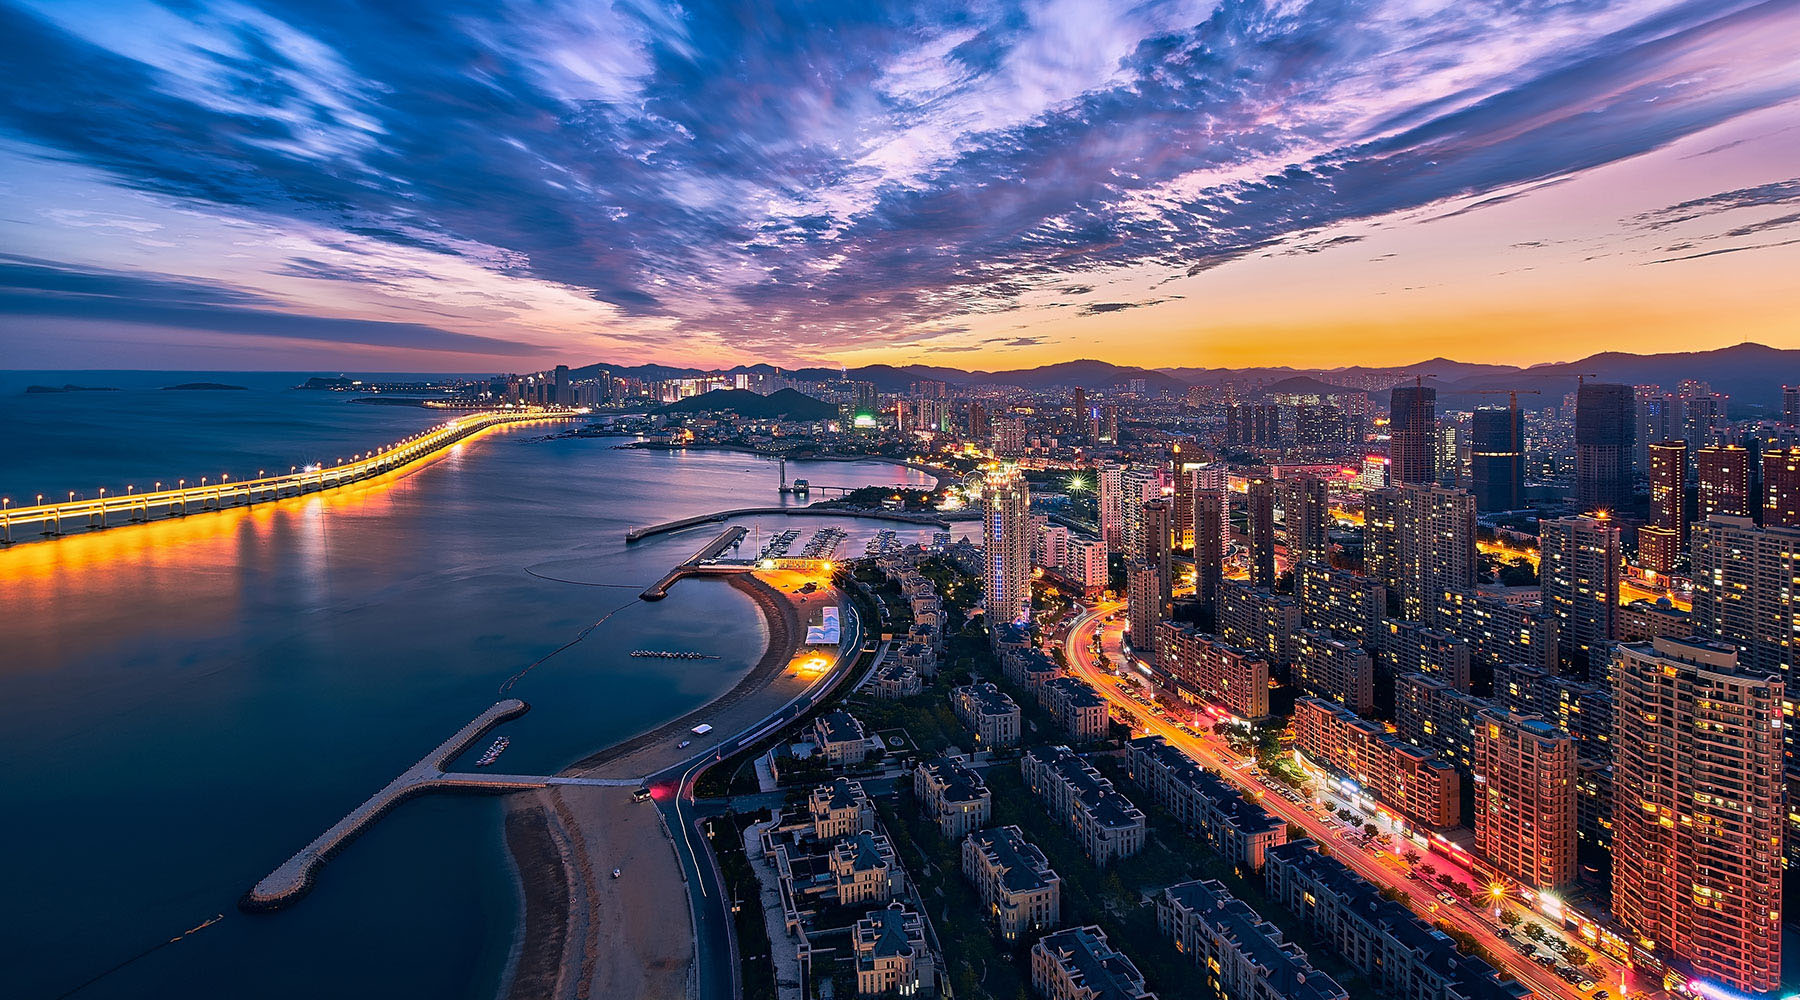 An aerial view of Dalian, China